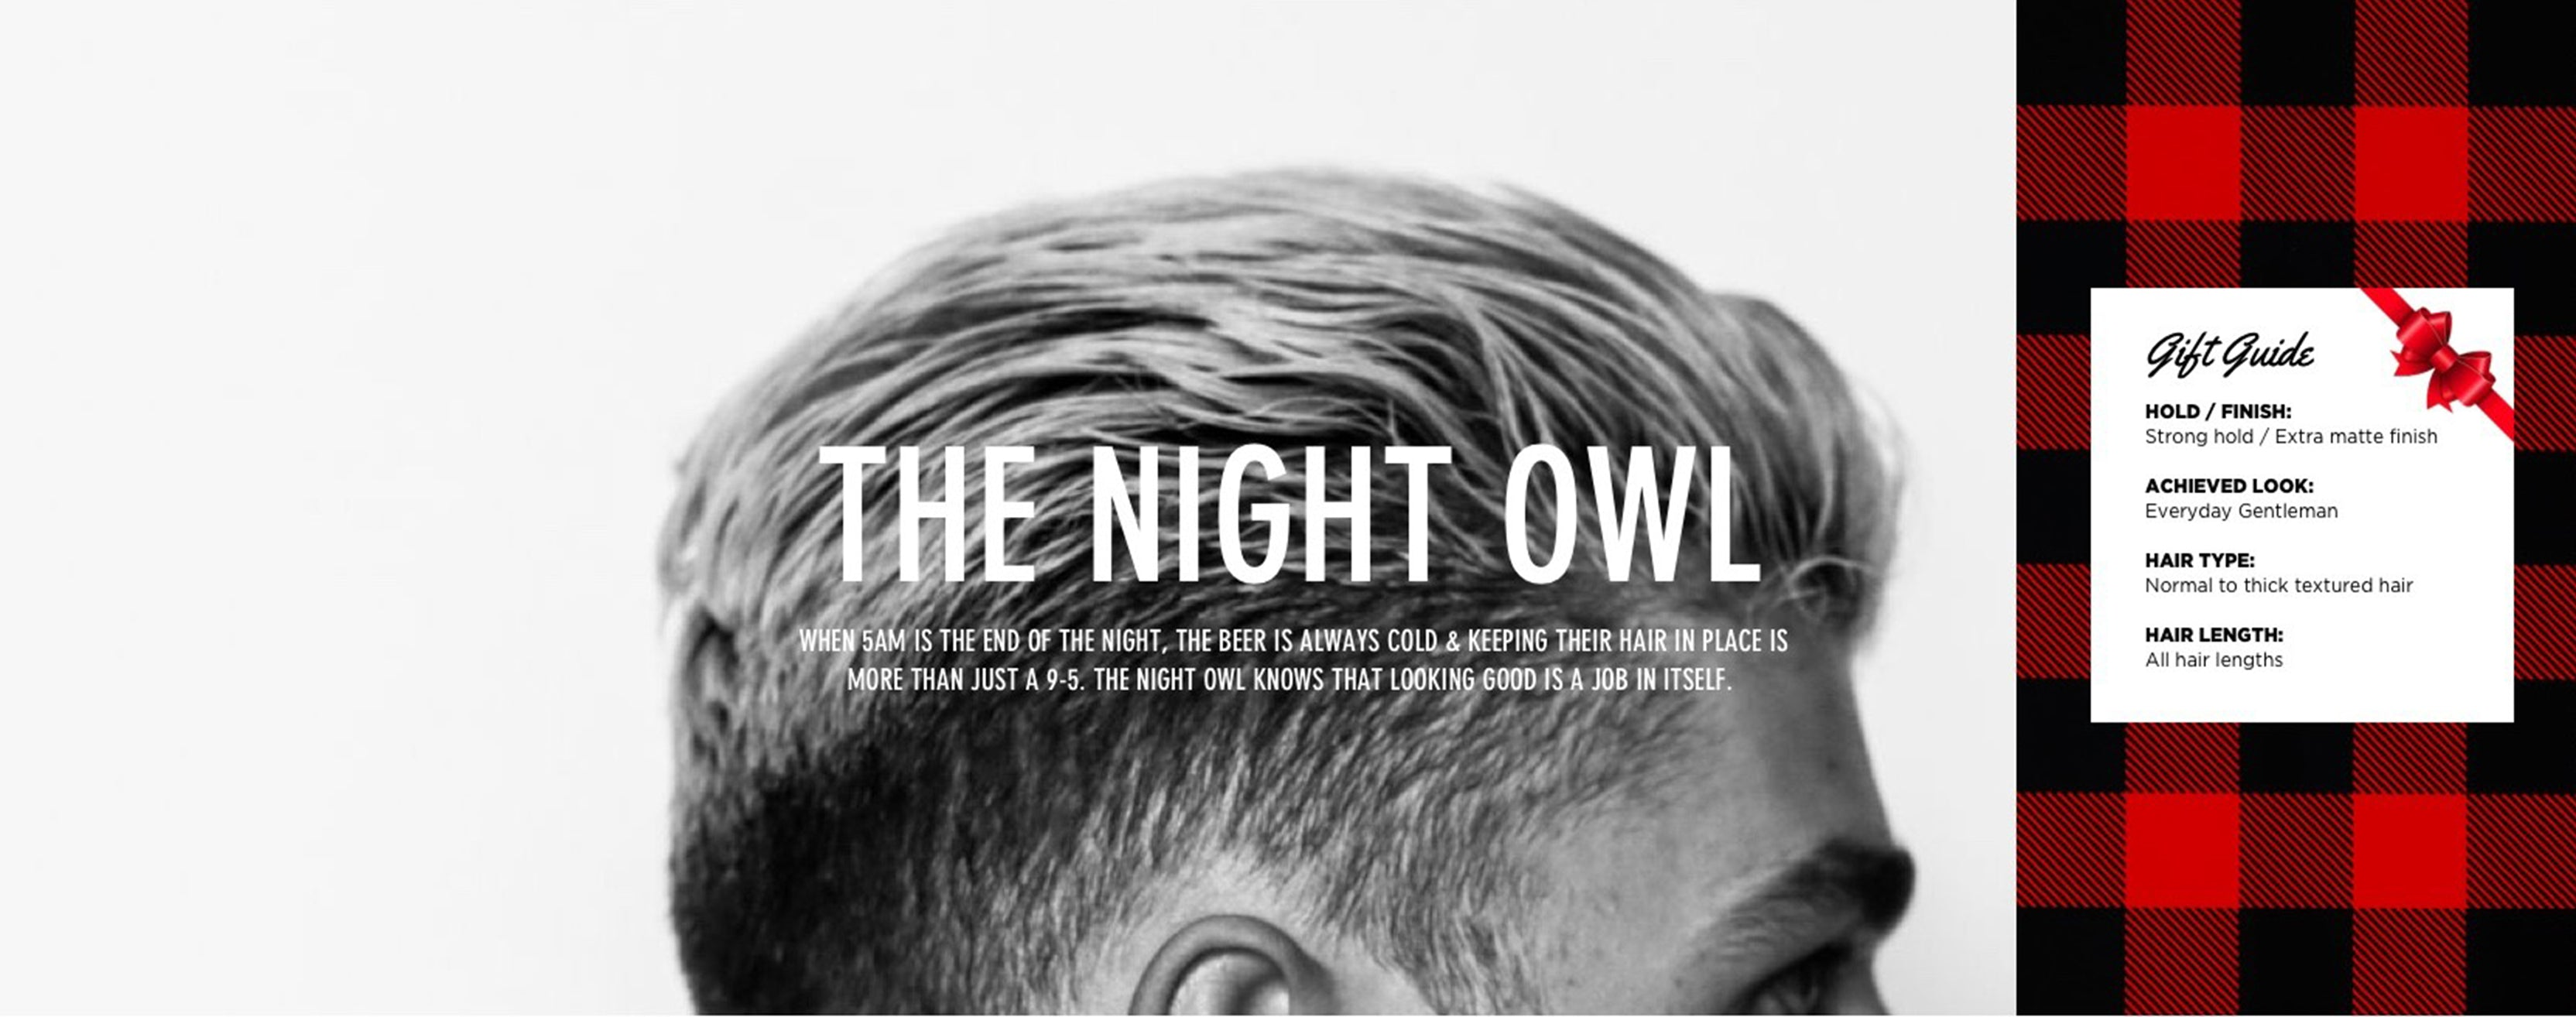 THE NIGHT OWL - WHEN 5AM IS THE END OF THE NIGHT, THE BEER IS ALWAYS COLD & KEEPING THEIR HAIR IN PLACE IS MORE THAN JUST A 9-5. THE NIGHT OWL KNOWS THAT LOOKING GOOD IS A JOB IN ITSELF